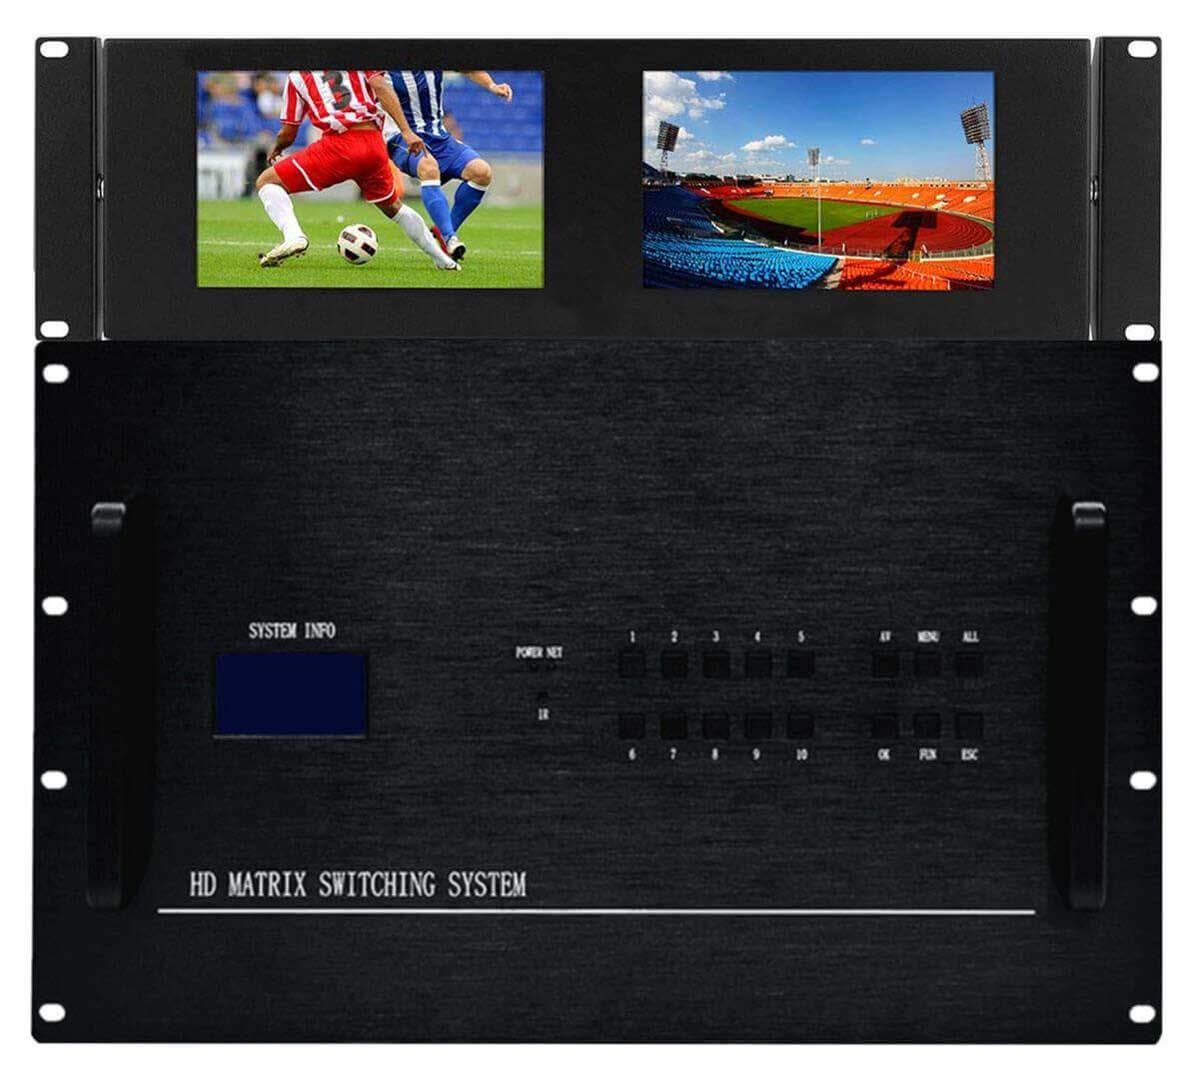 4K 12x32 HDMI Matrix HDBaseT Switch with 32-CAT5 Extenders